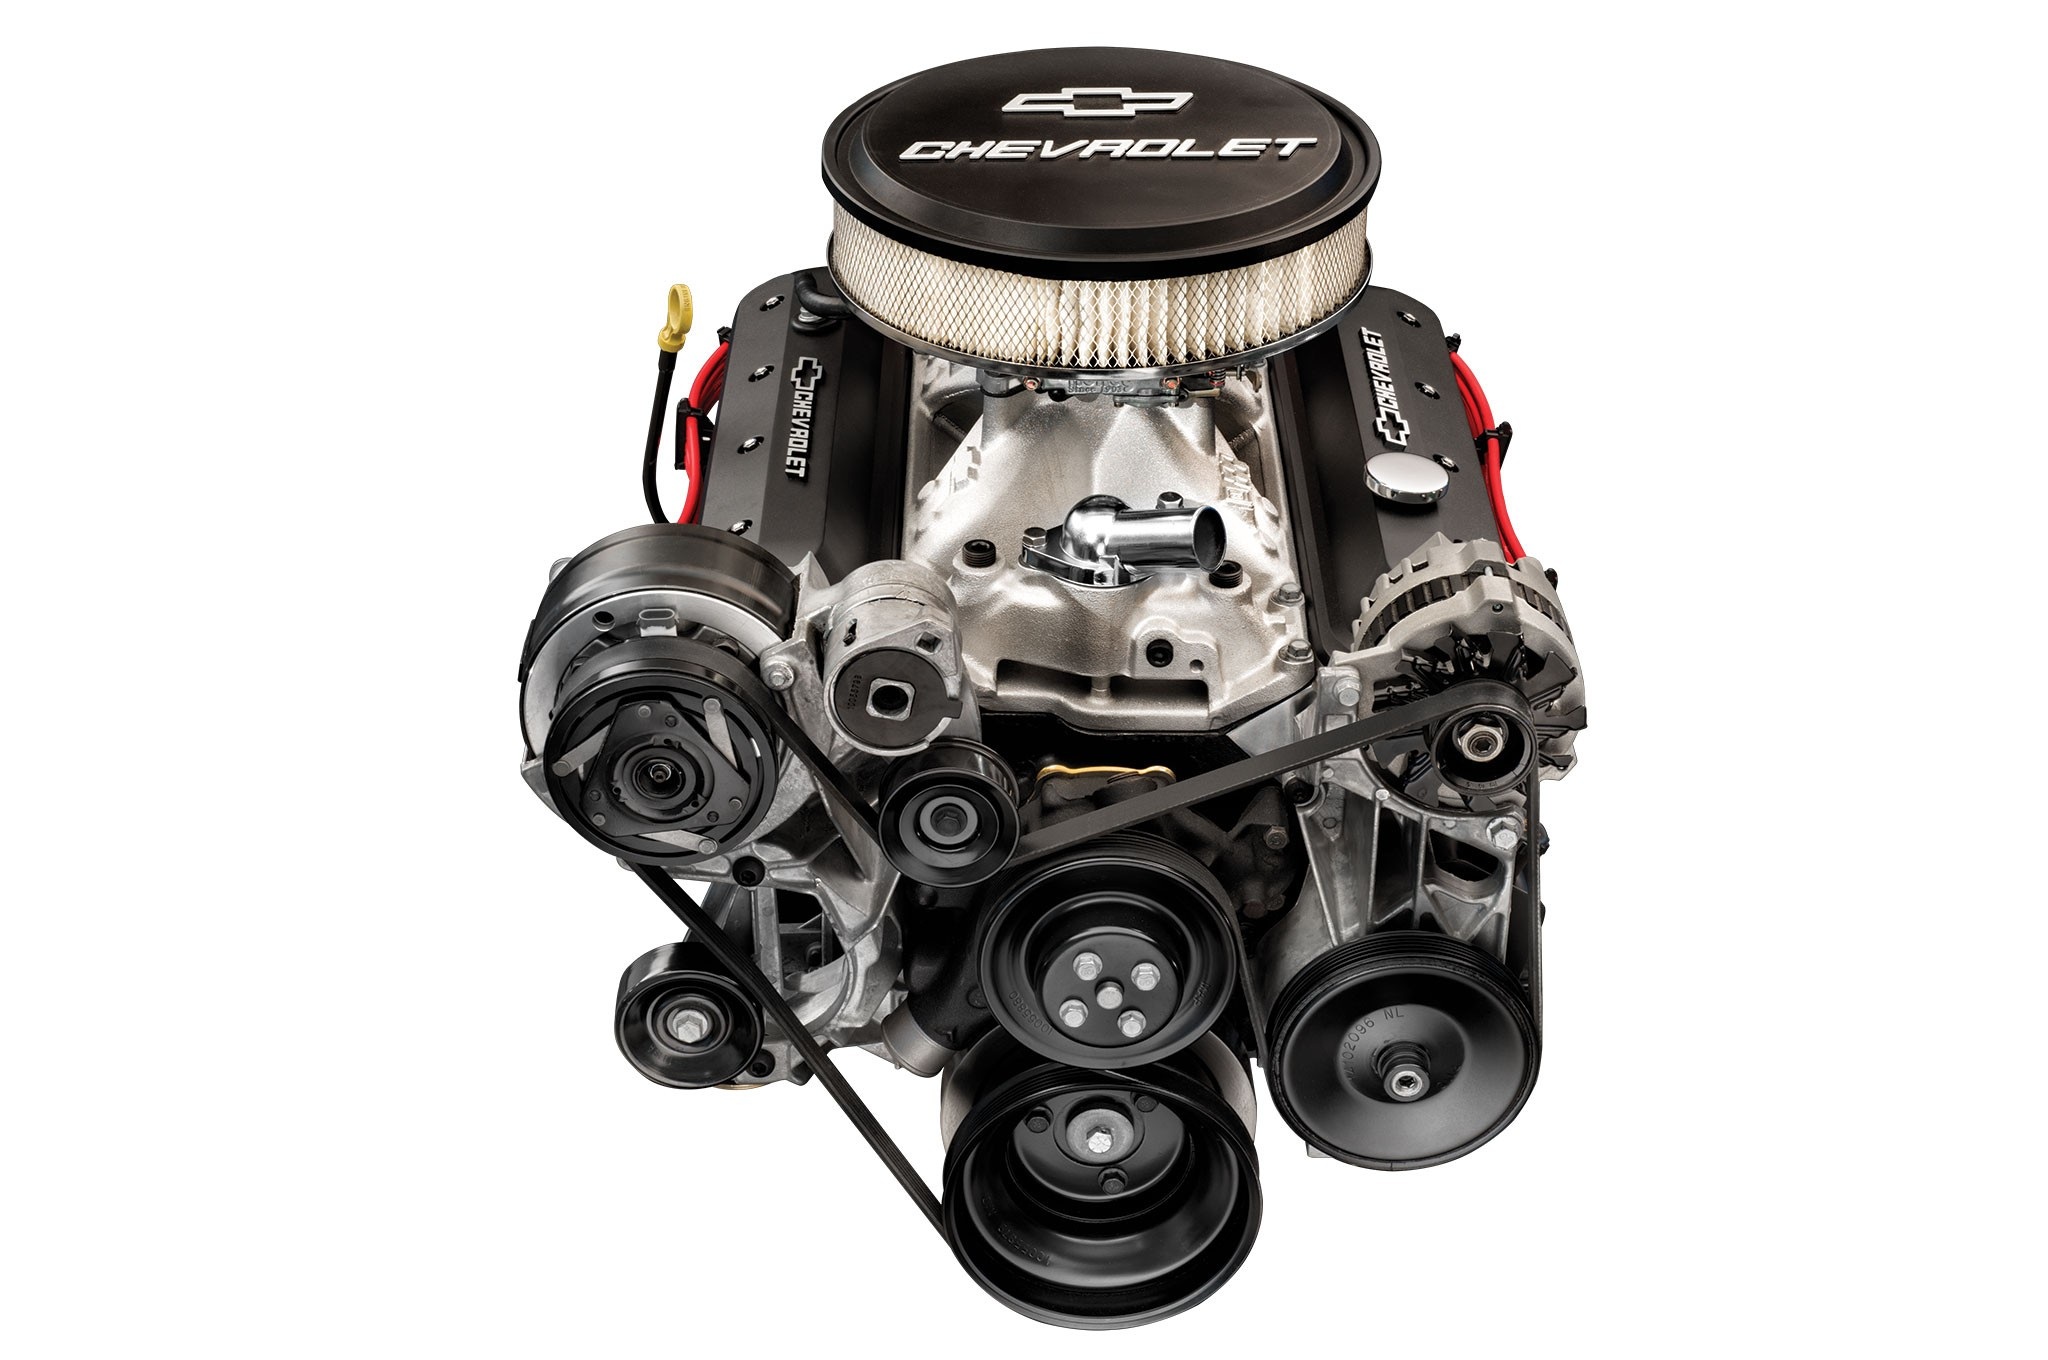 Chevrolet 350 Engine Diagram Exclusive First Look the 405hp Zz6 Chevy Crate Engine Hot Rod Network Of Chevrolet 350 Engine Diagram